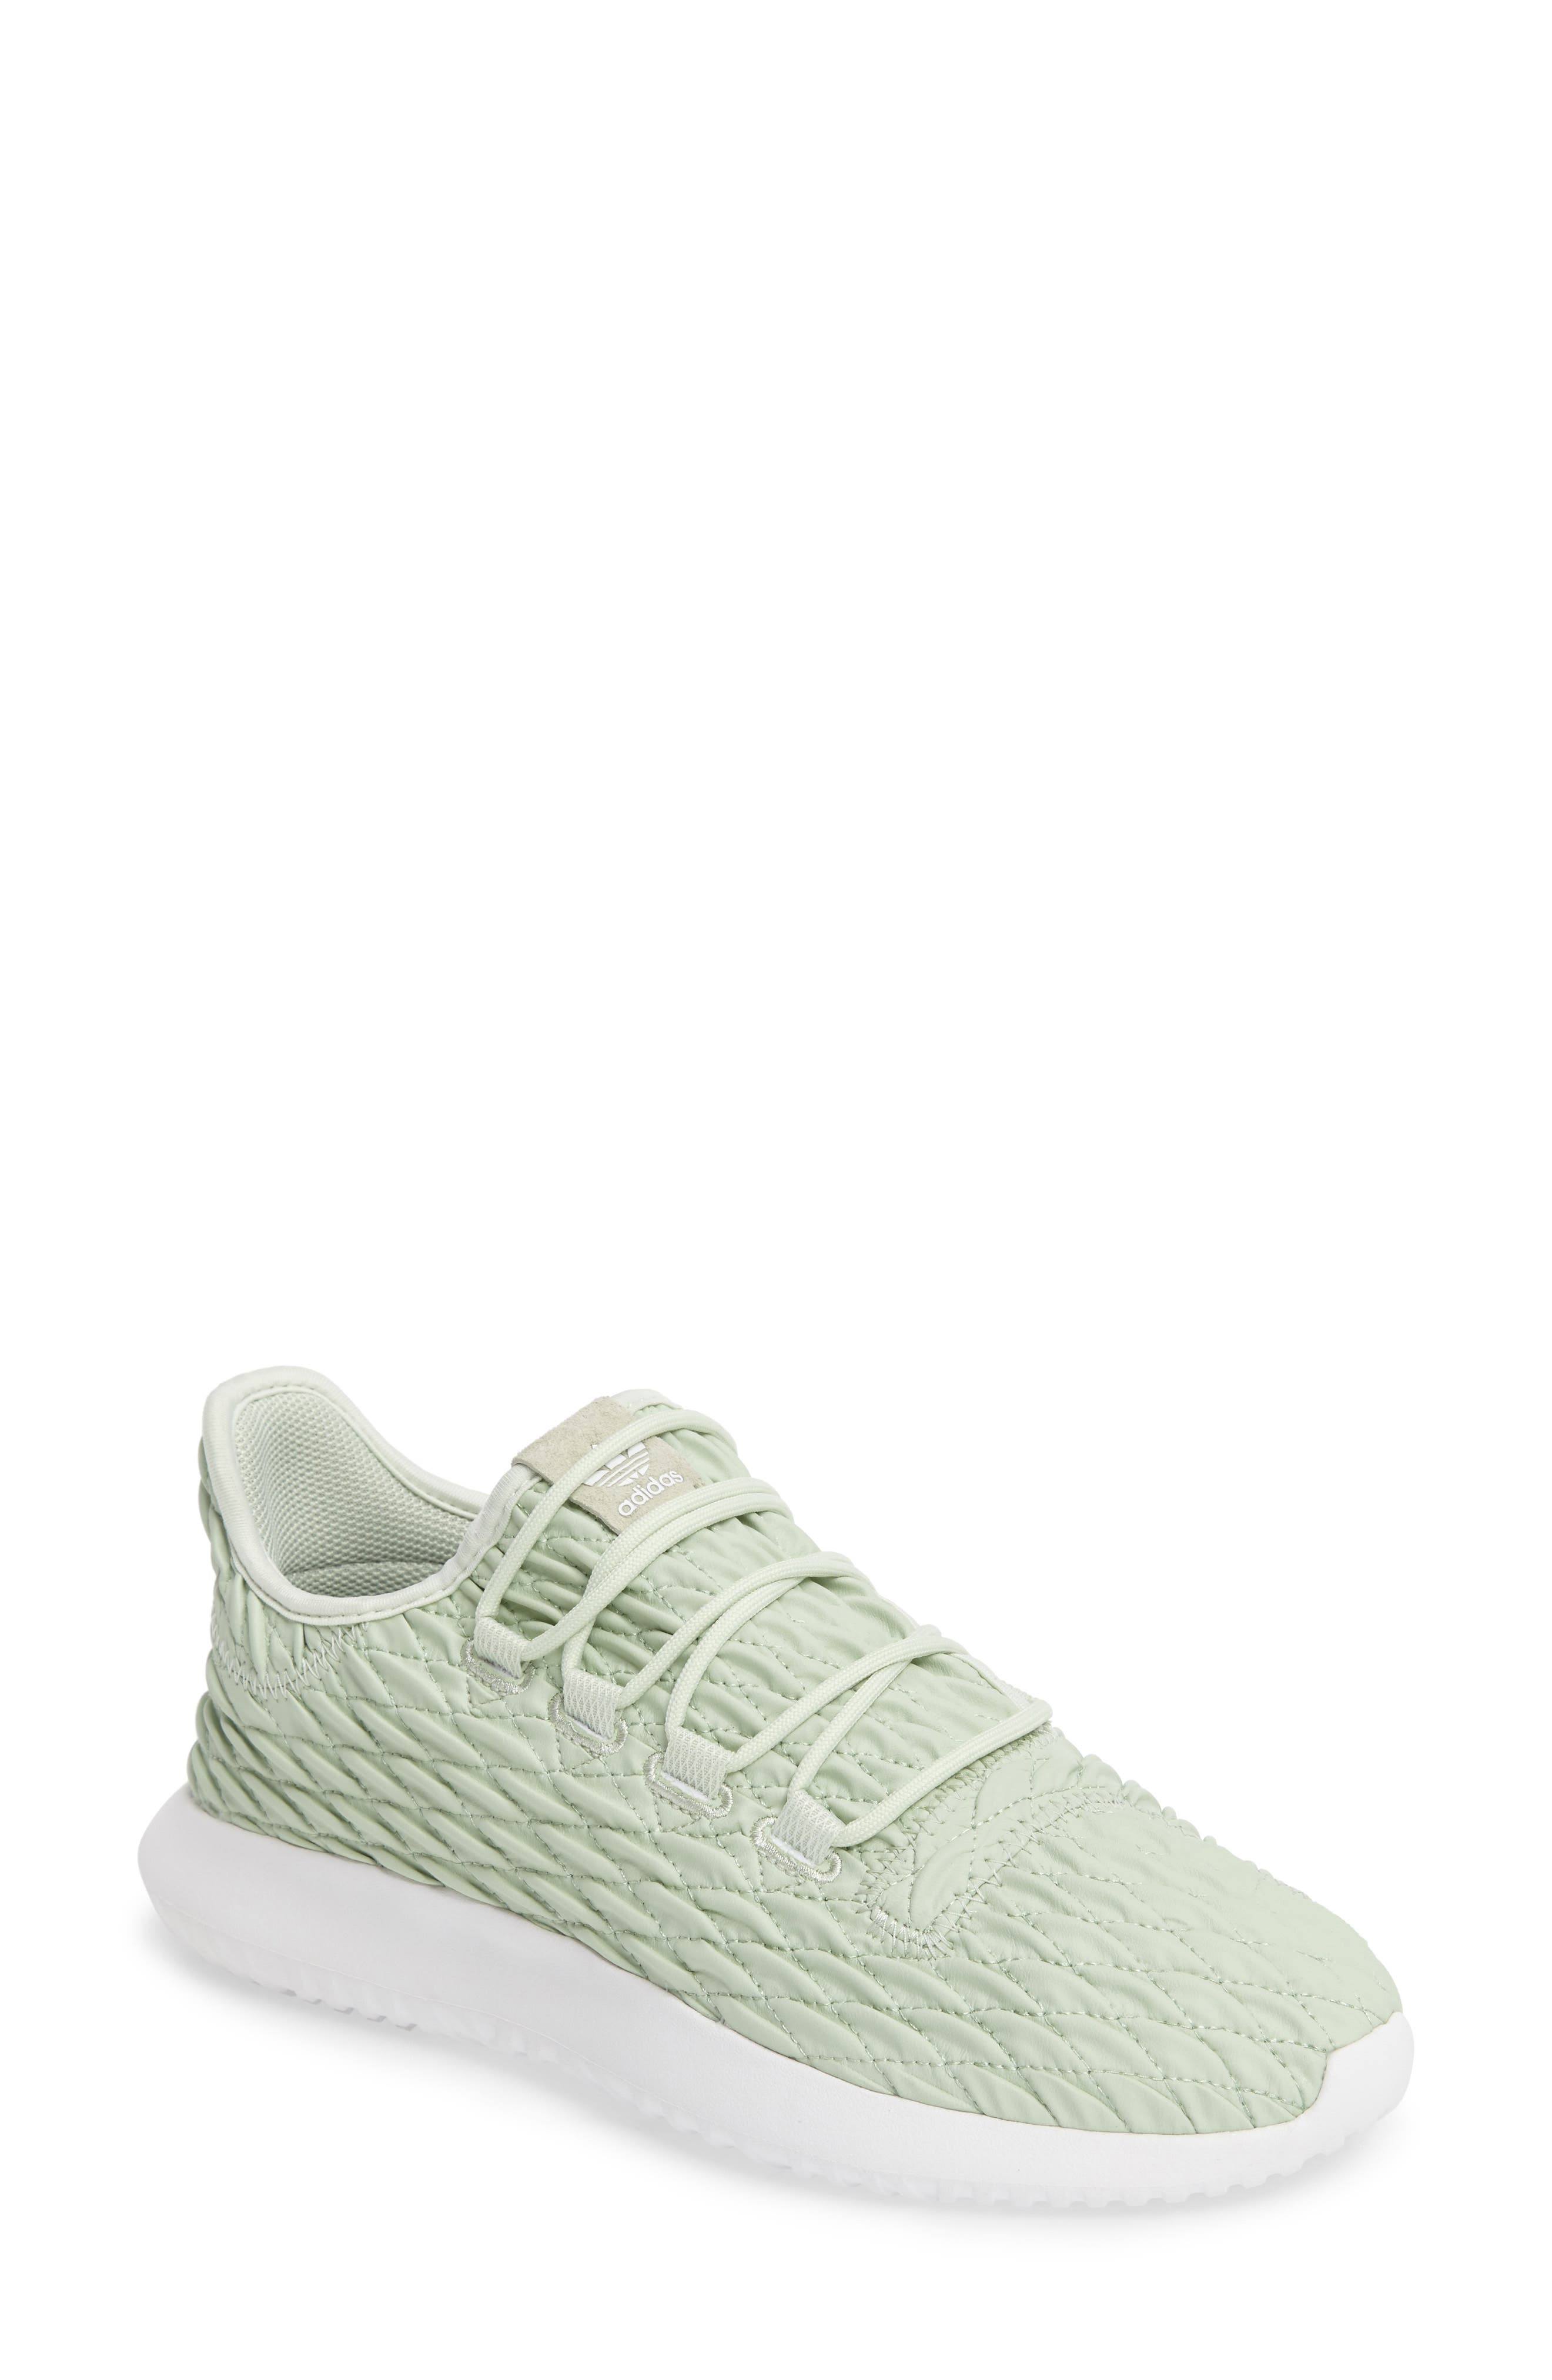 adidas Tubular Shadow Sneaker (Women)